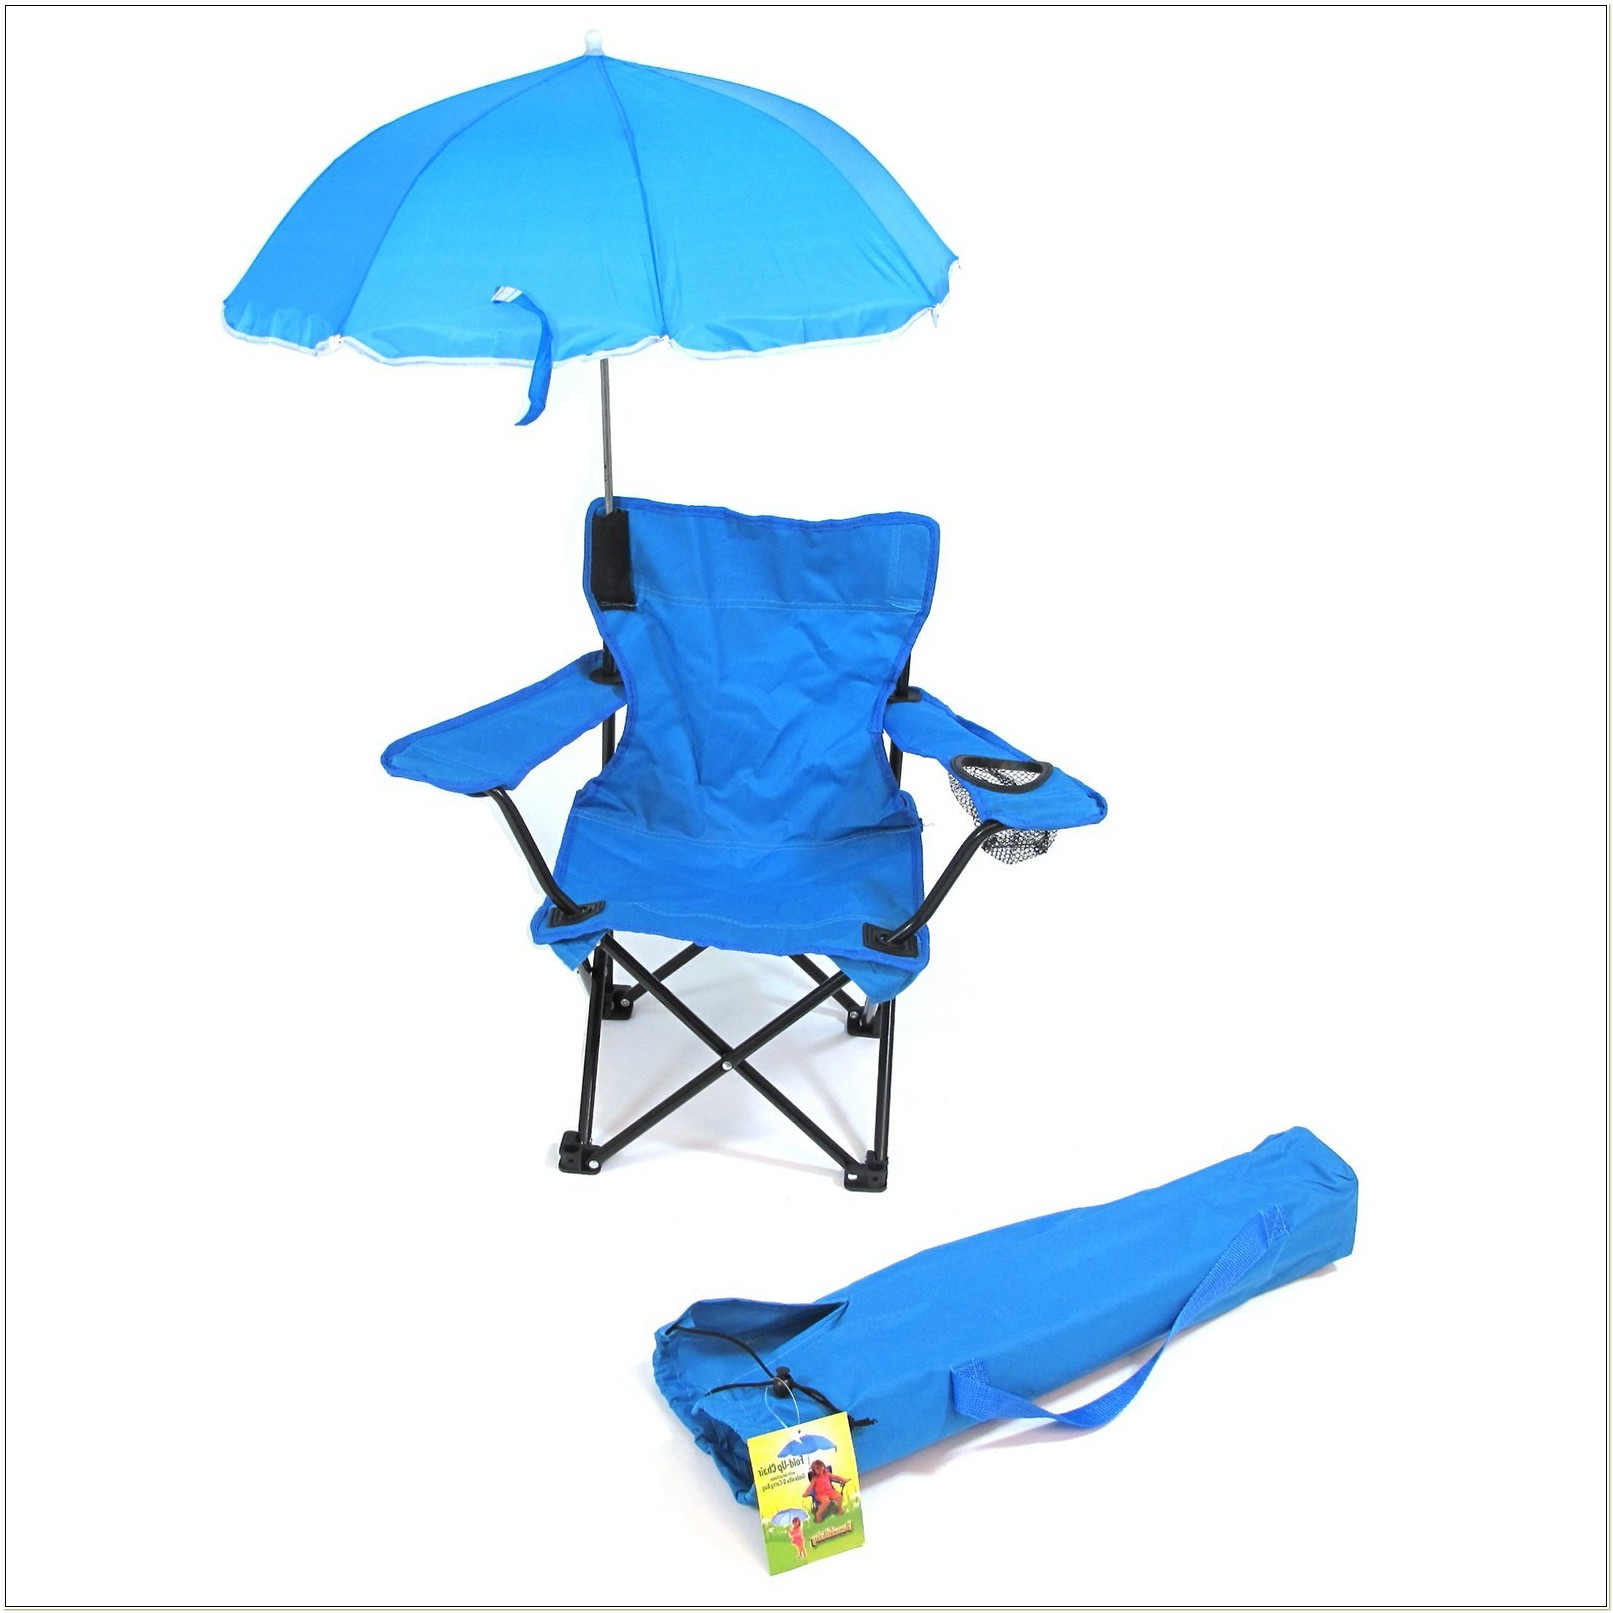 Camping Chairs With Umbrella